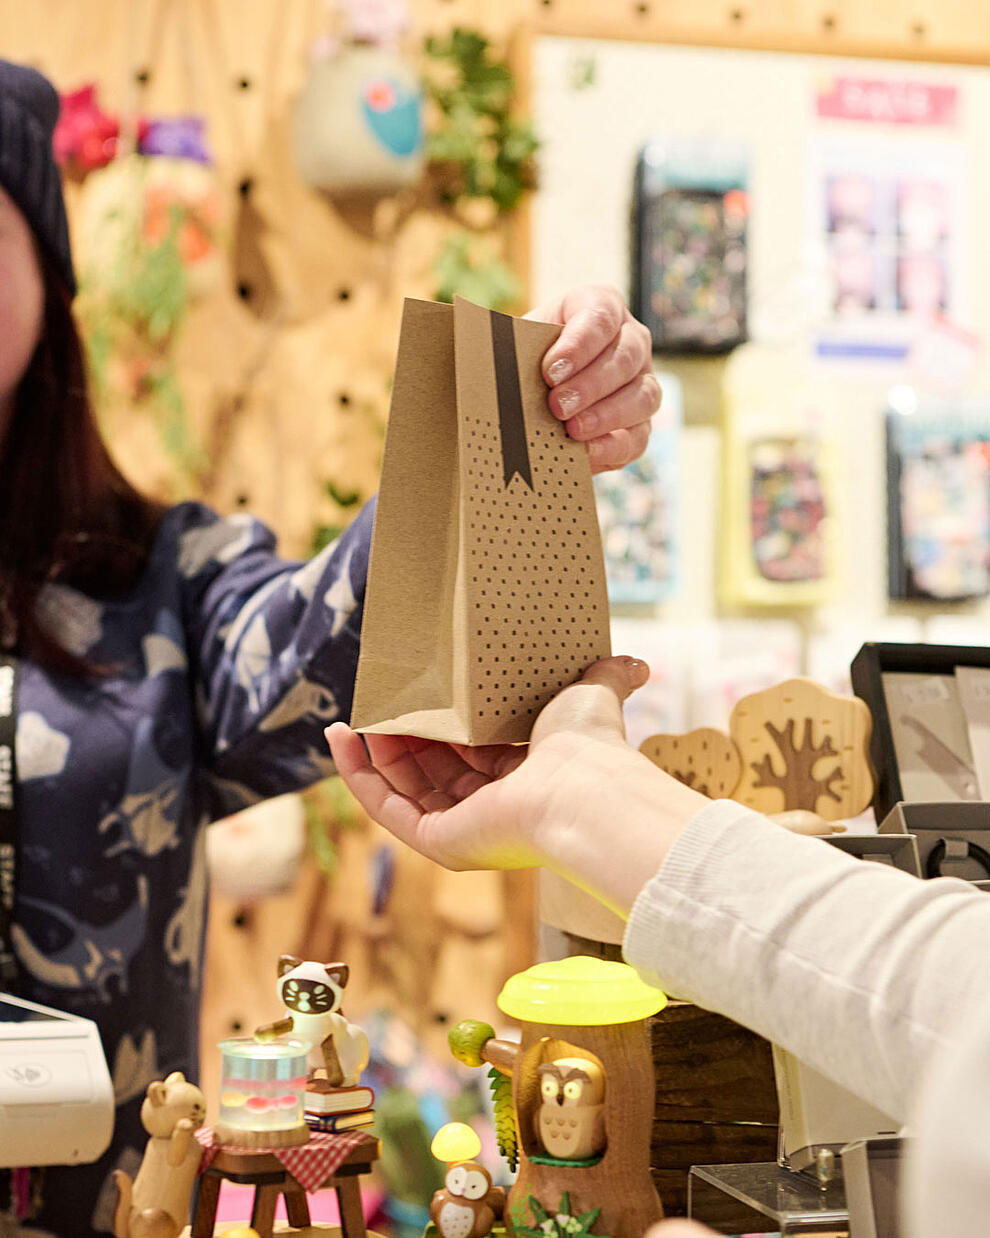 How Much Does It Cost to Start a Retail Business?